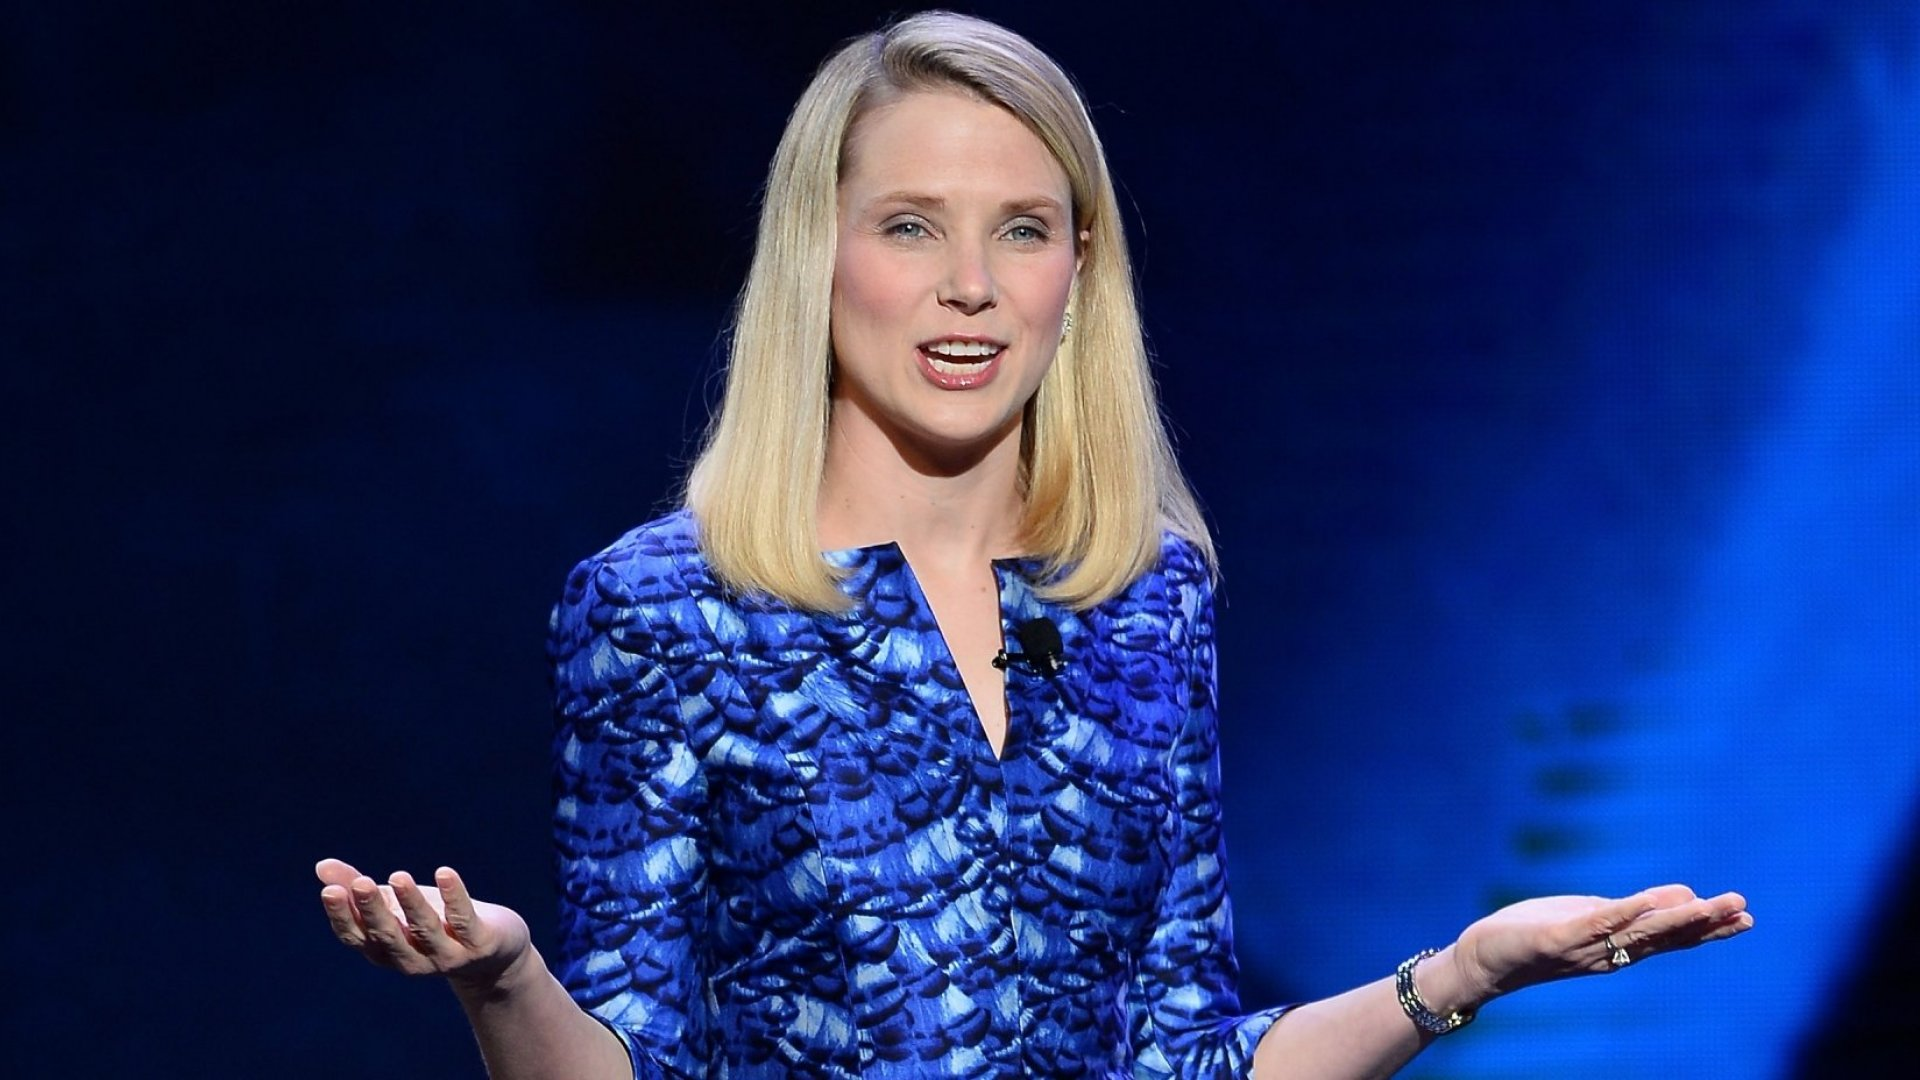 Yahoo's Marissa Mayer Tops List of 10 Highest-Paid Women CEOs